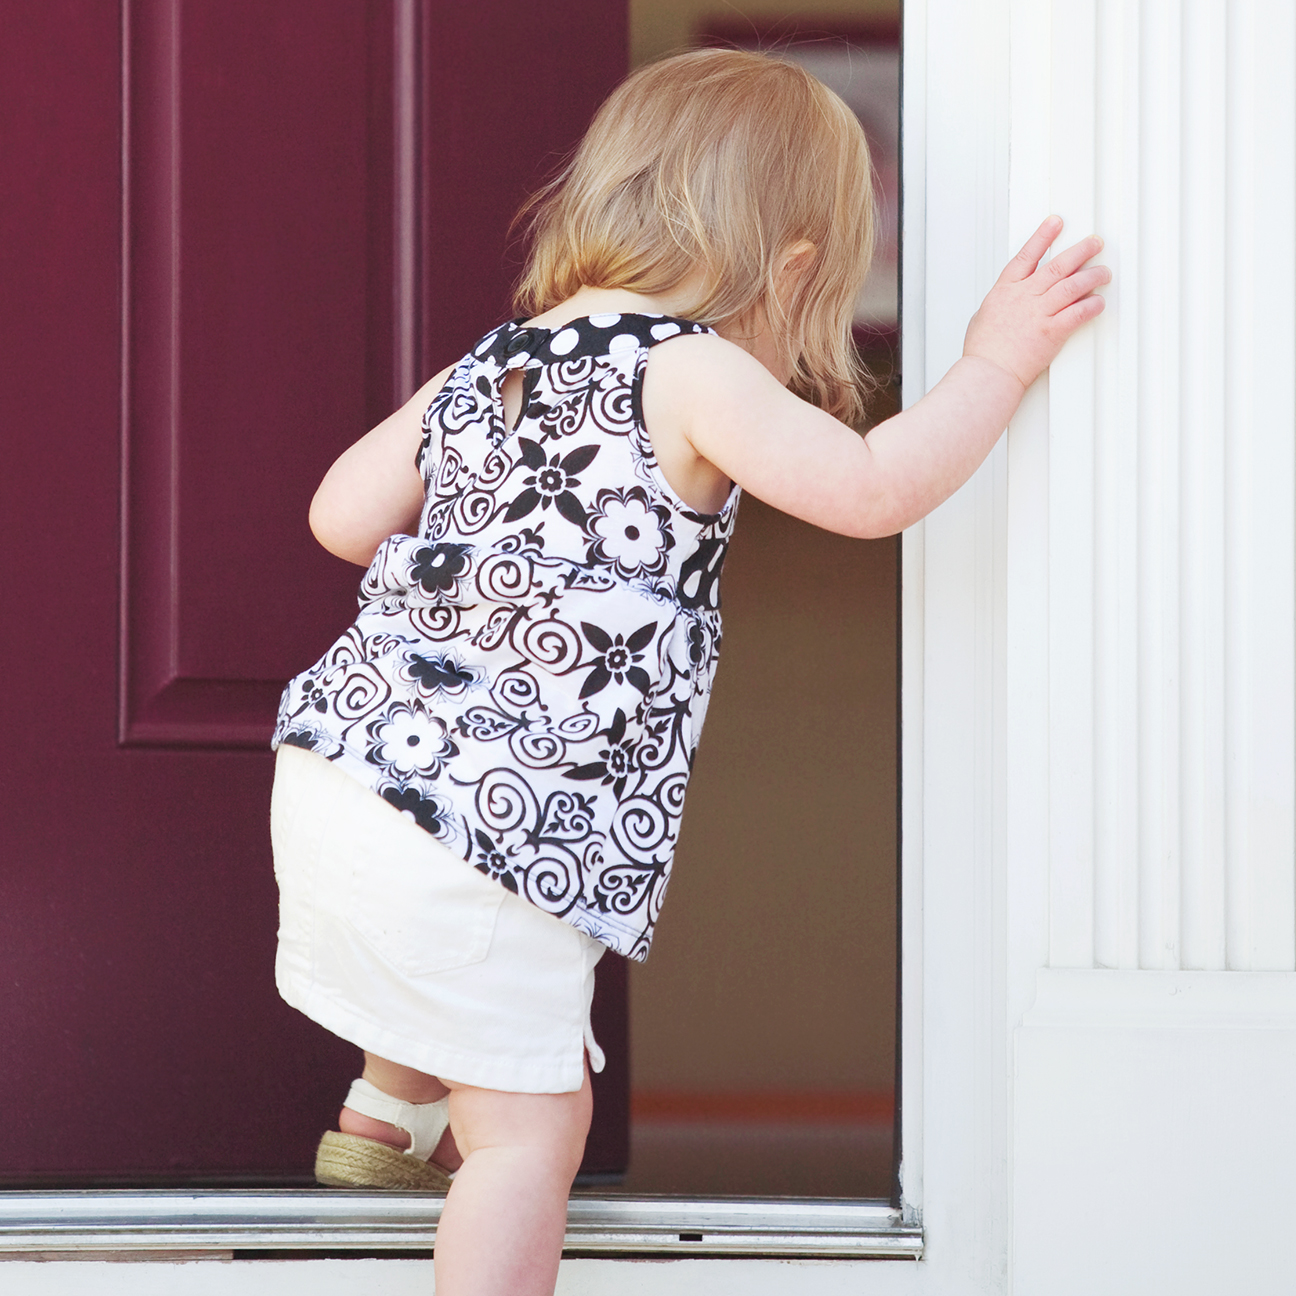 bigstock-Little-Girl-Going-Into-Home-3179359.jpg